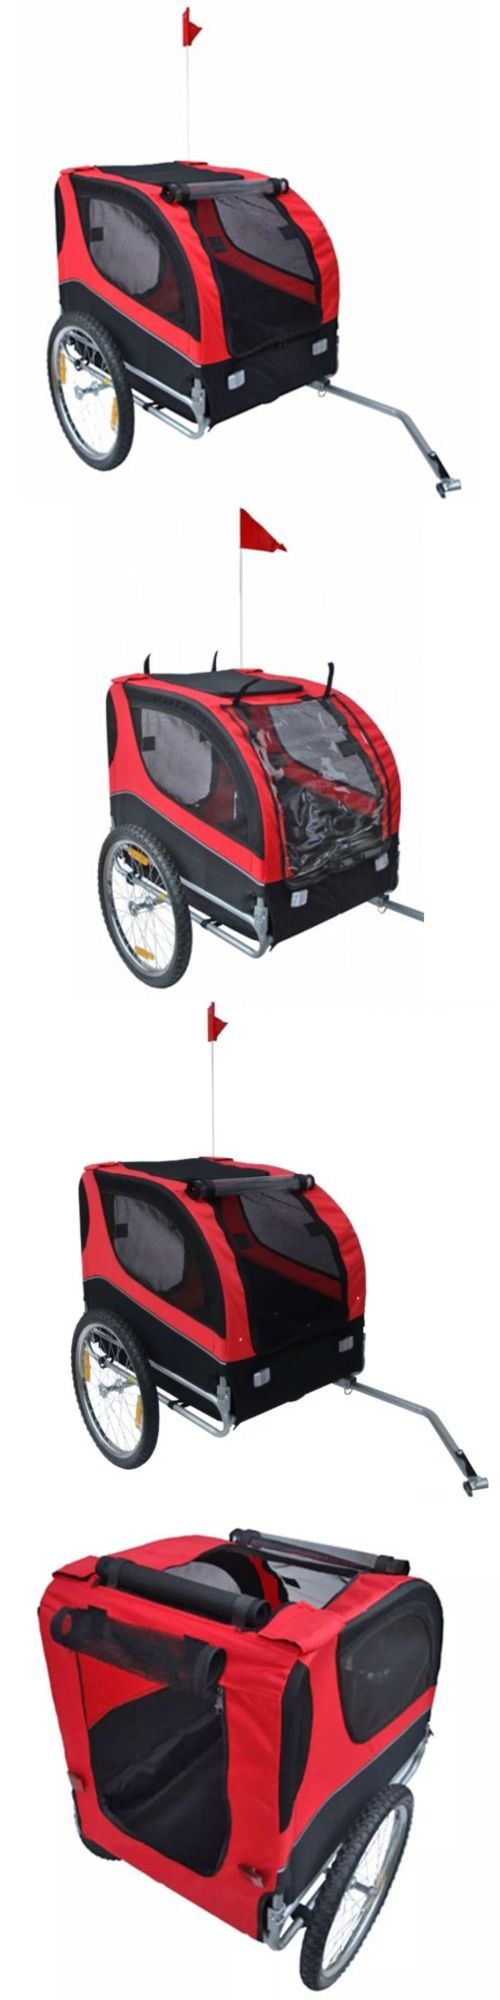 Bike baskets and trailers foldable bicycle pet carrier